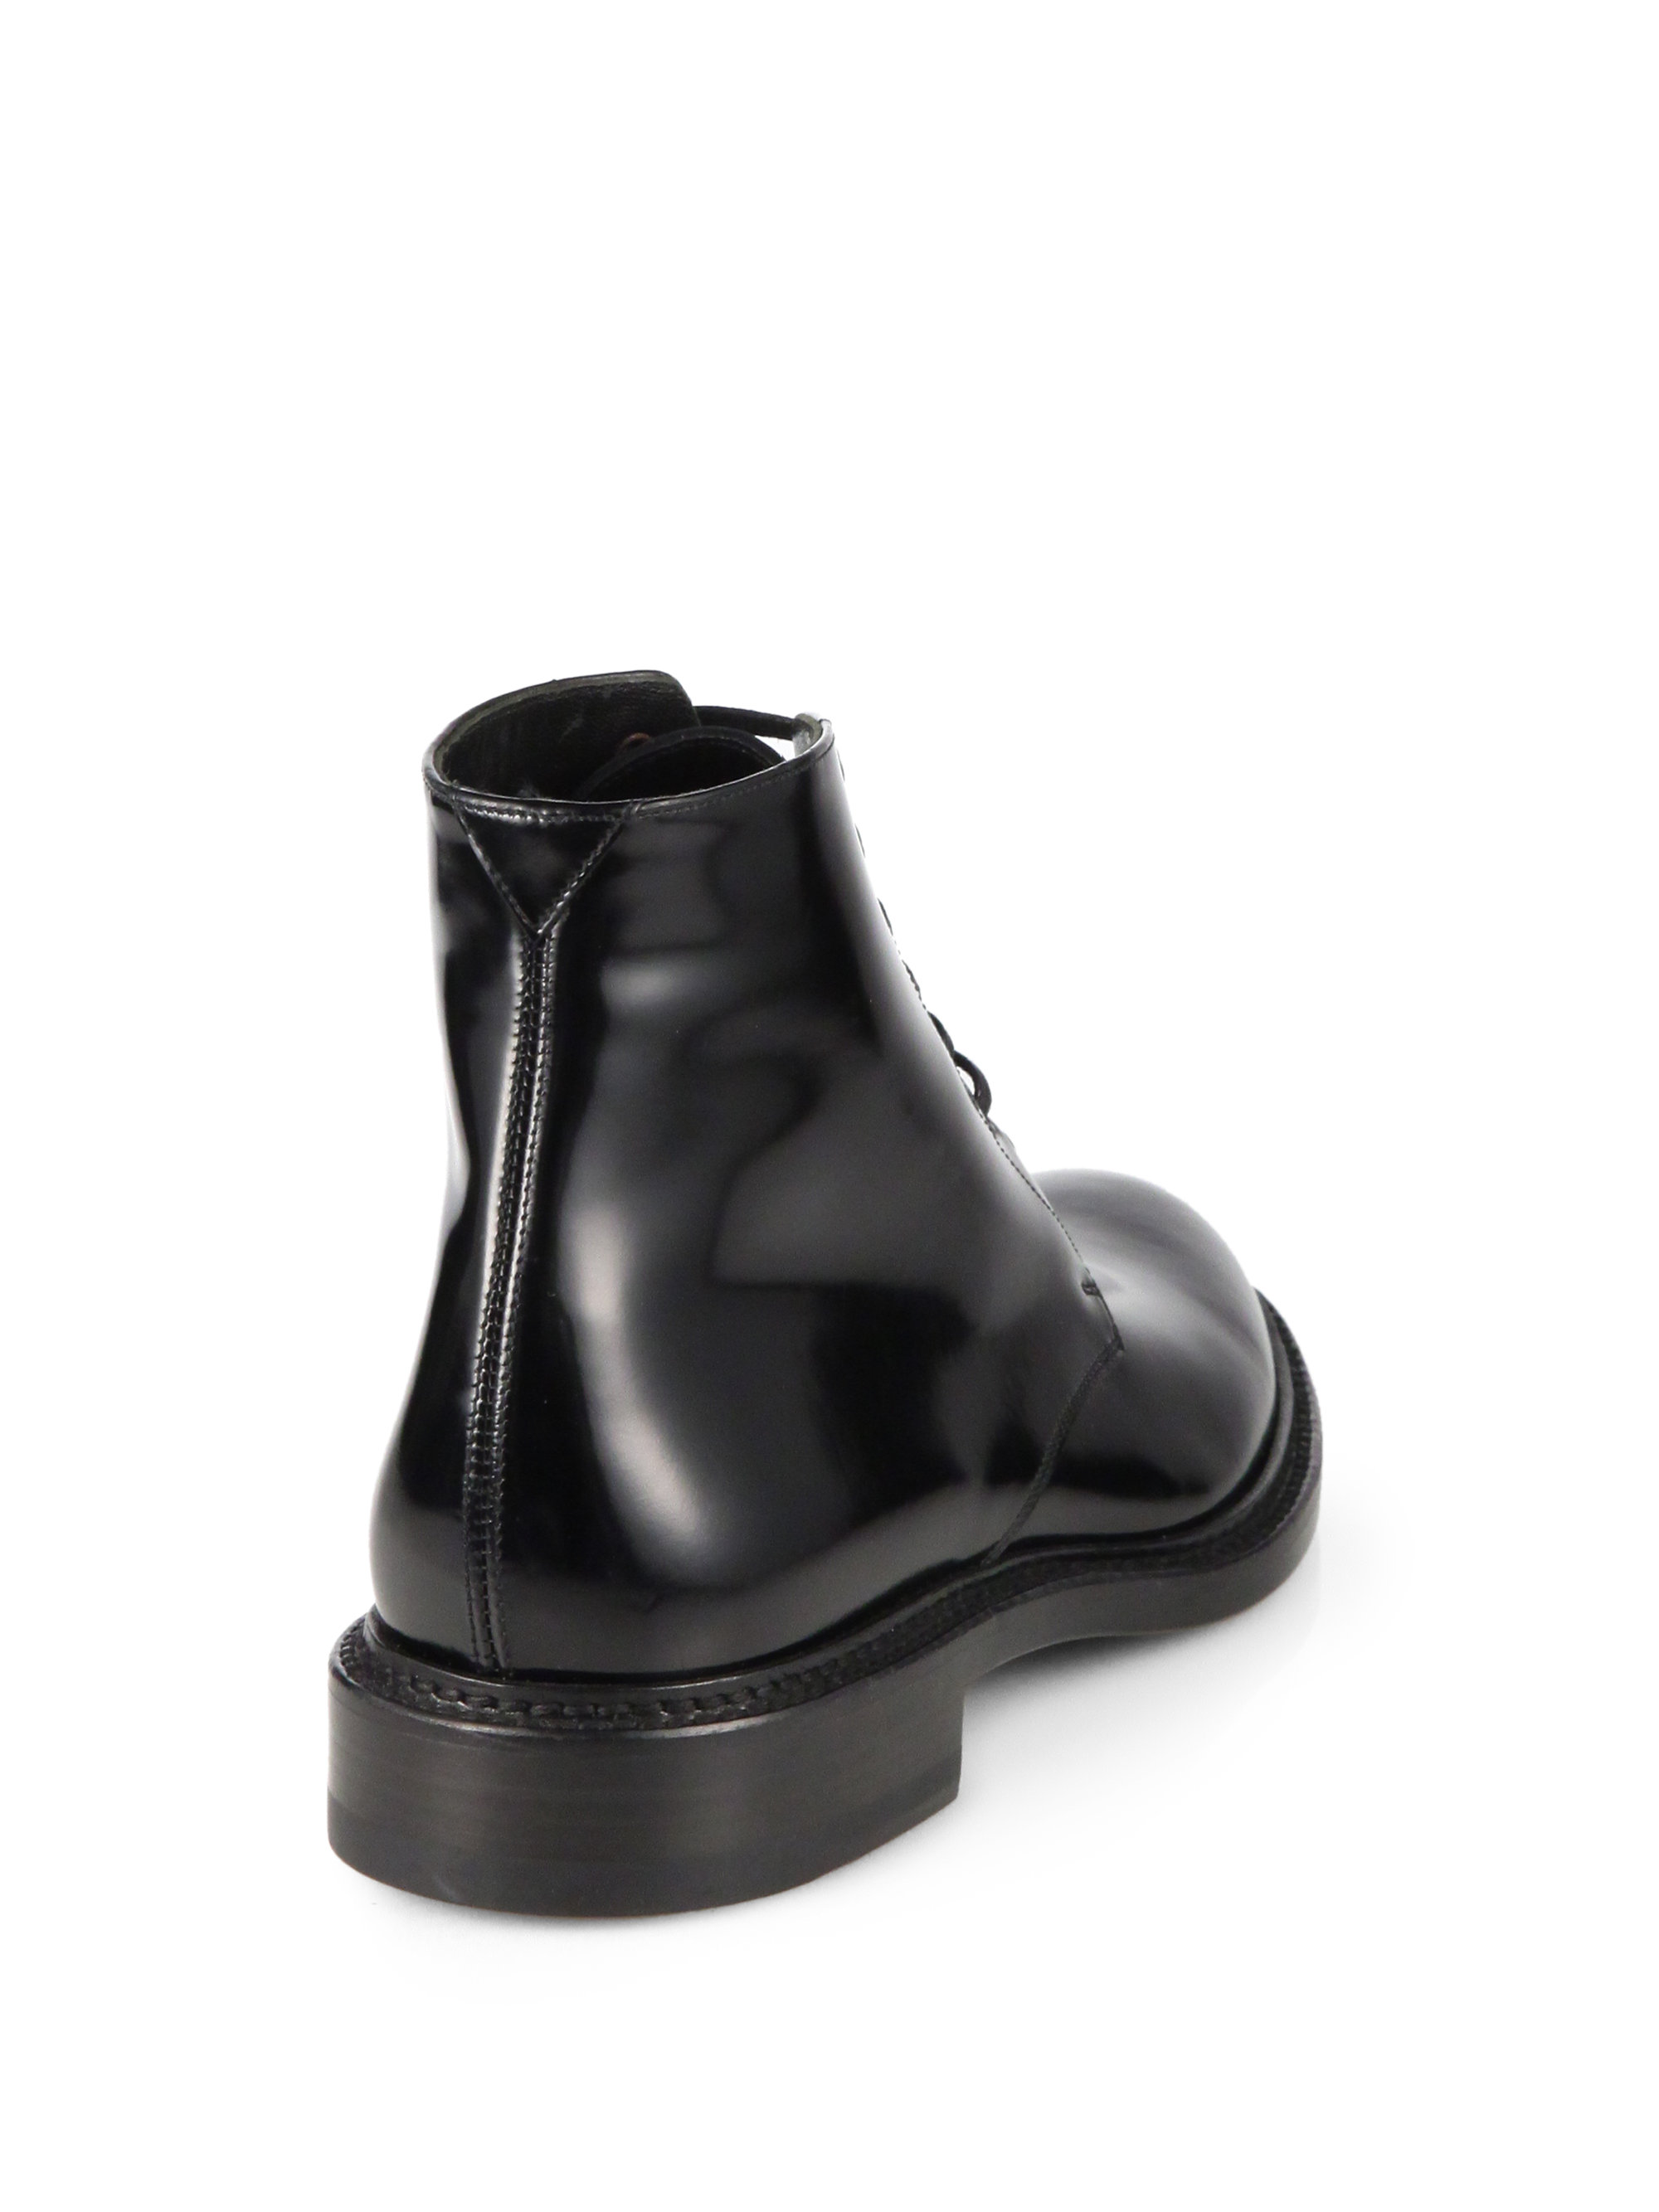 450561947b6 Saint Laurent Army Patent Leather Laceup Ankle Boots in Black - Lyst